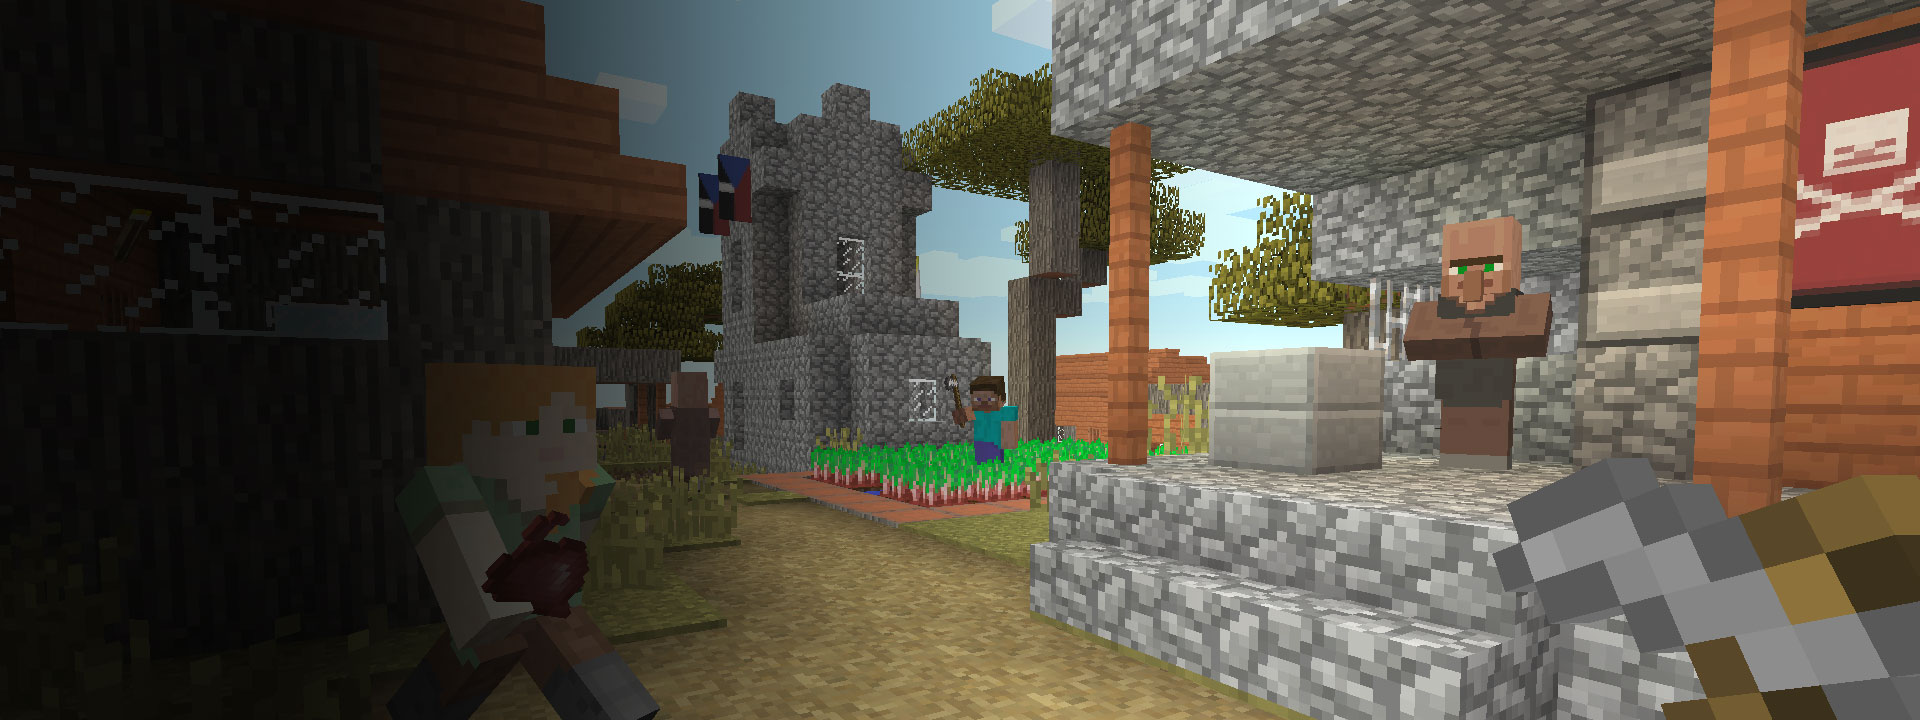 Multiple houses and Minecraft characters walking in the foreground.